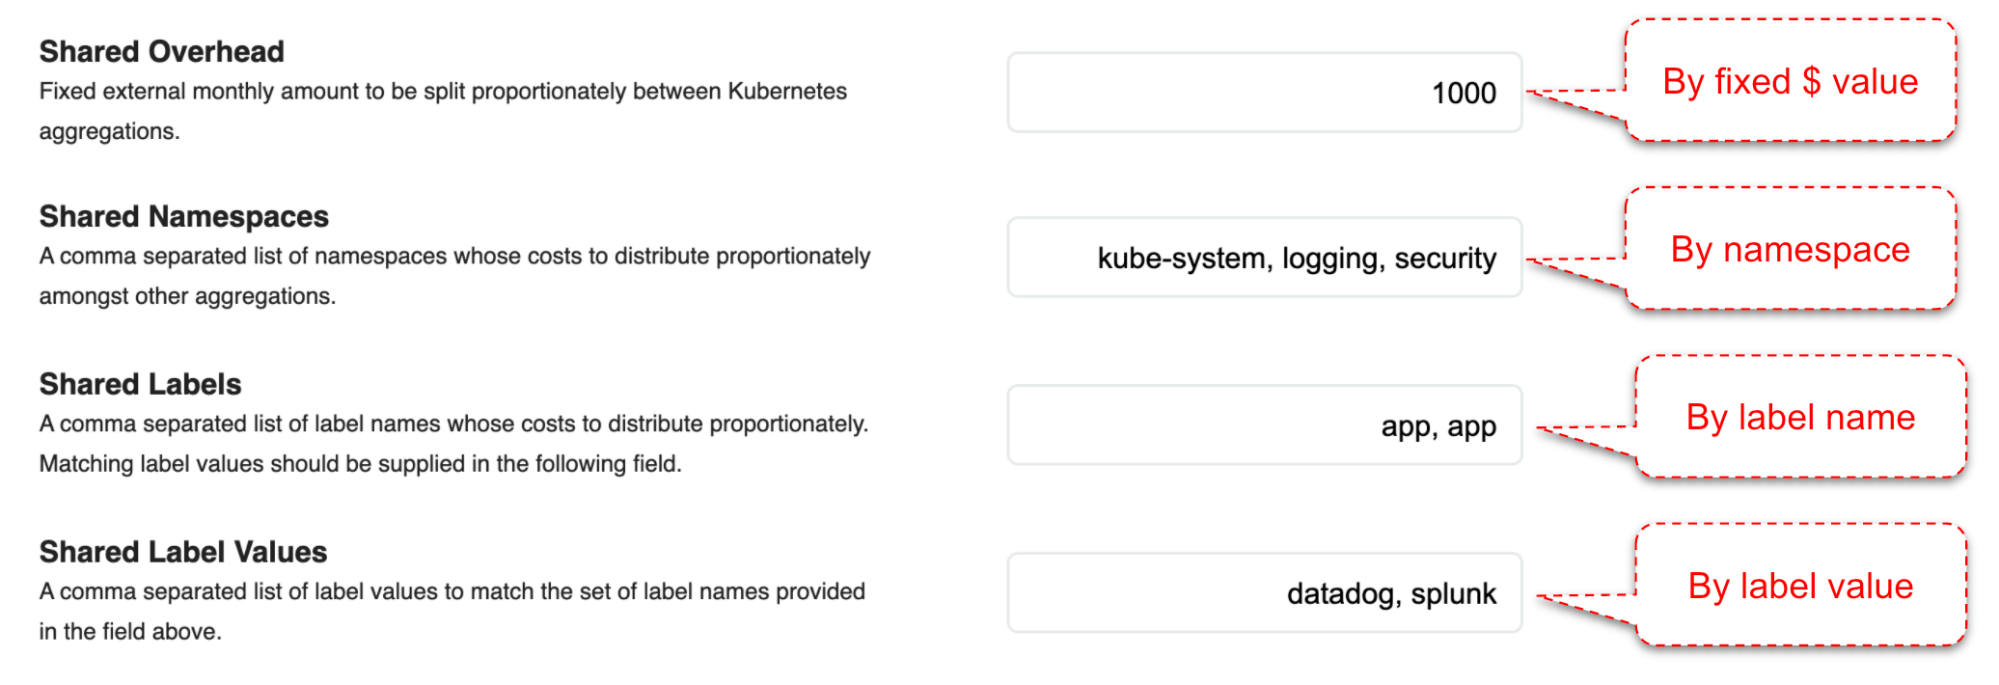 Allocation of shared costs are controlled in the Kubecost Settings page